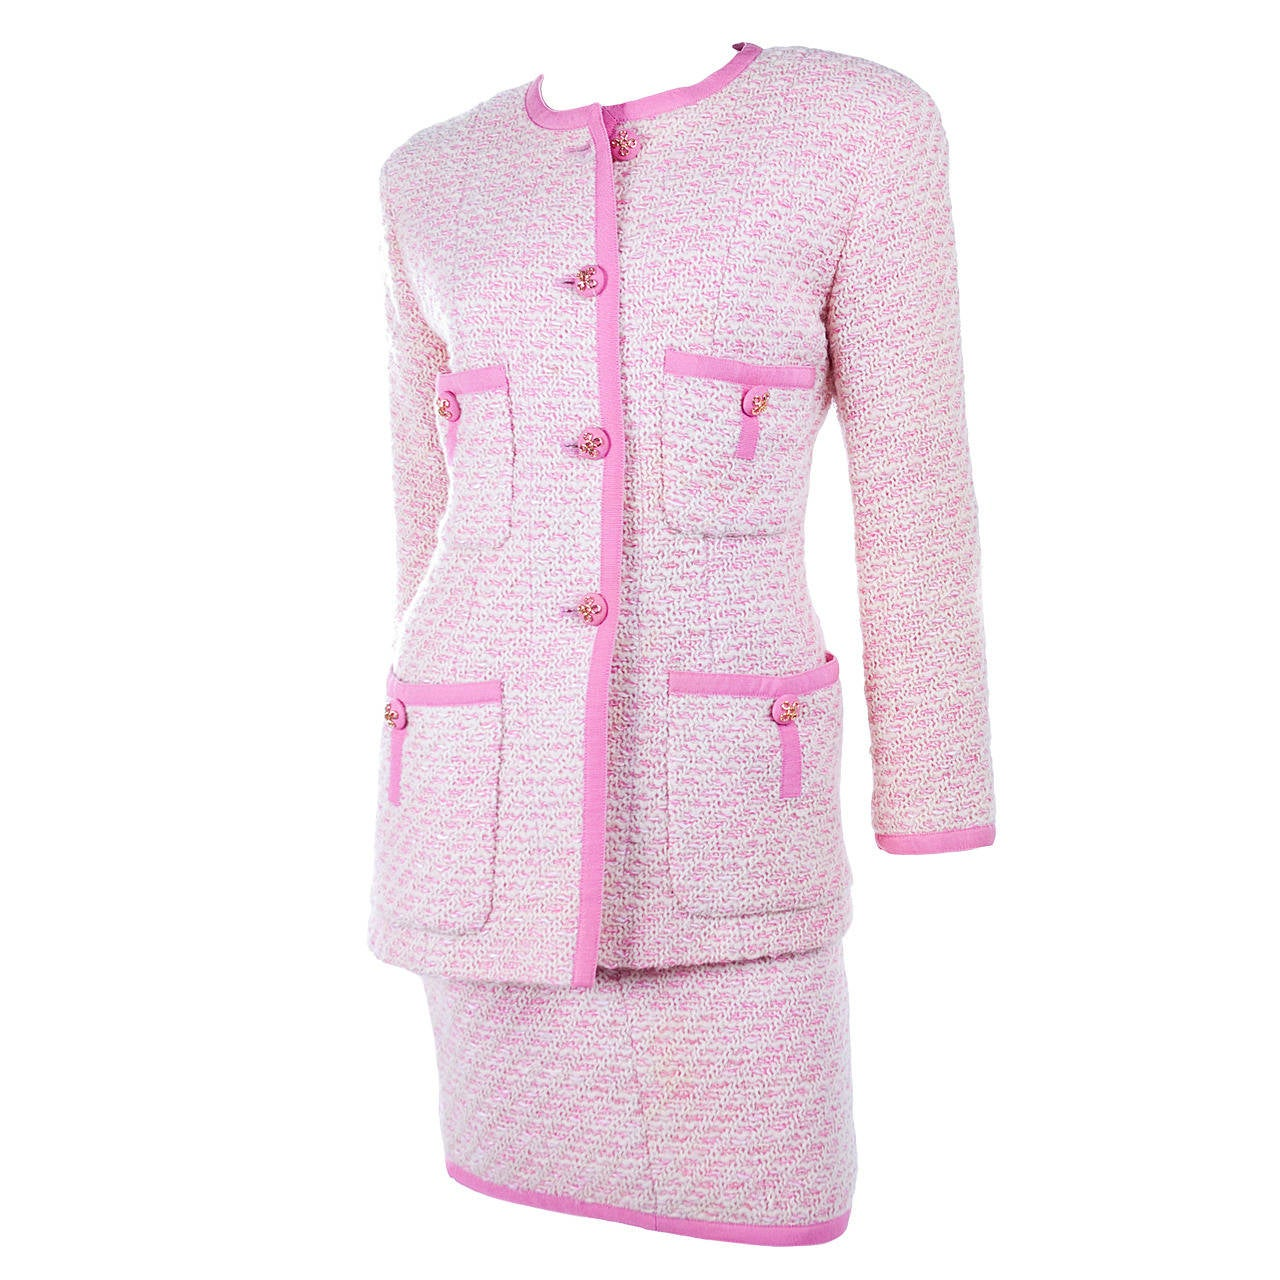 Chanel Suit in Pink and Creme Documented